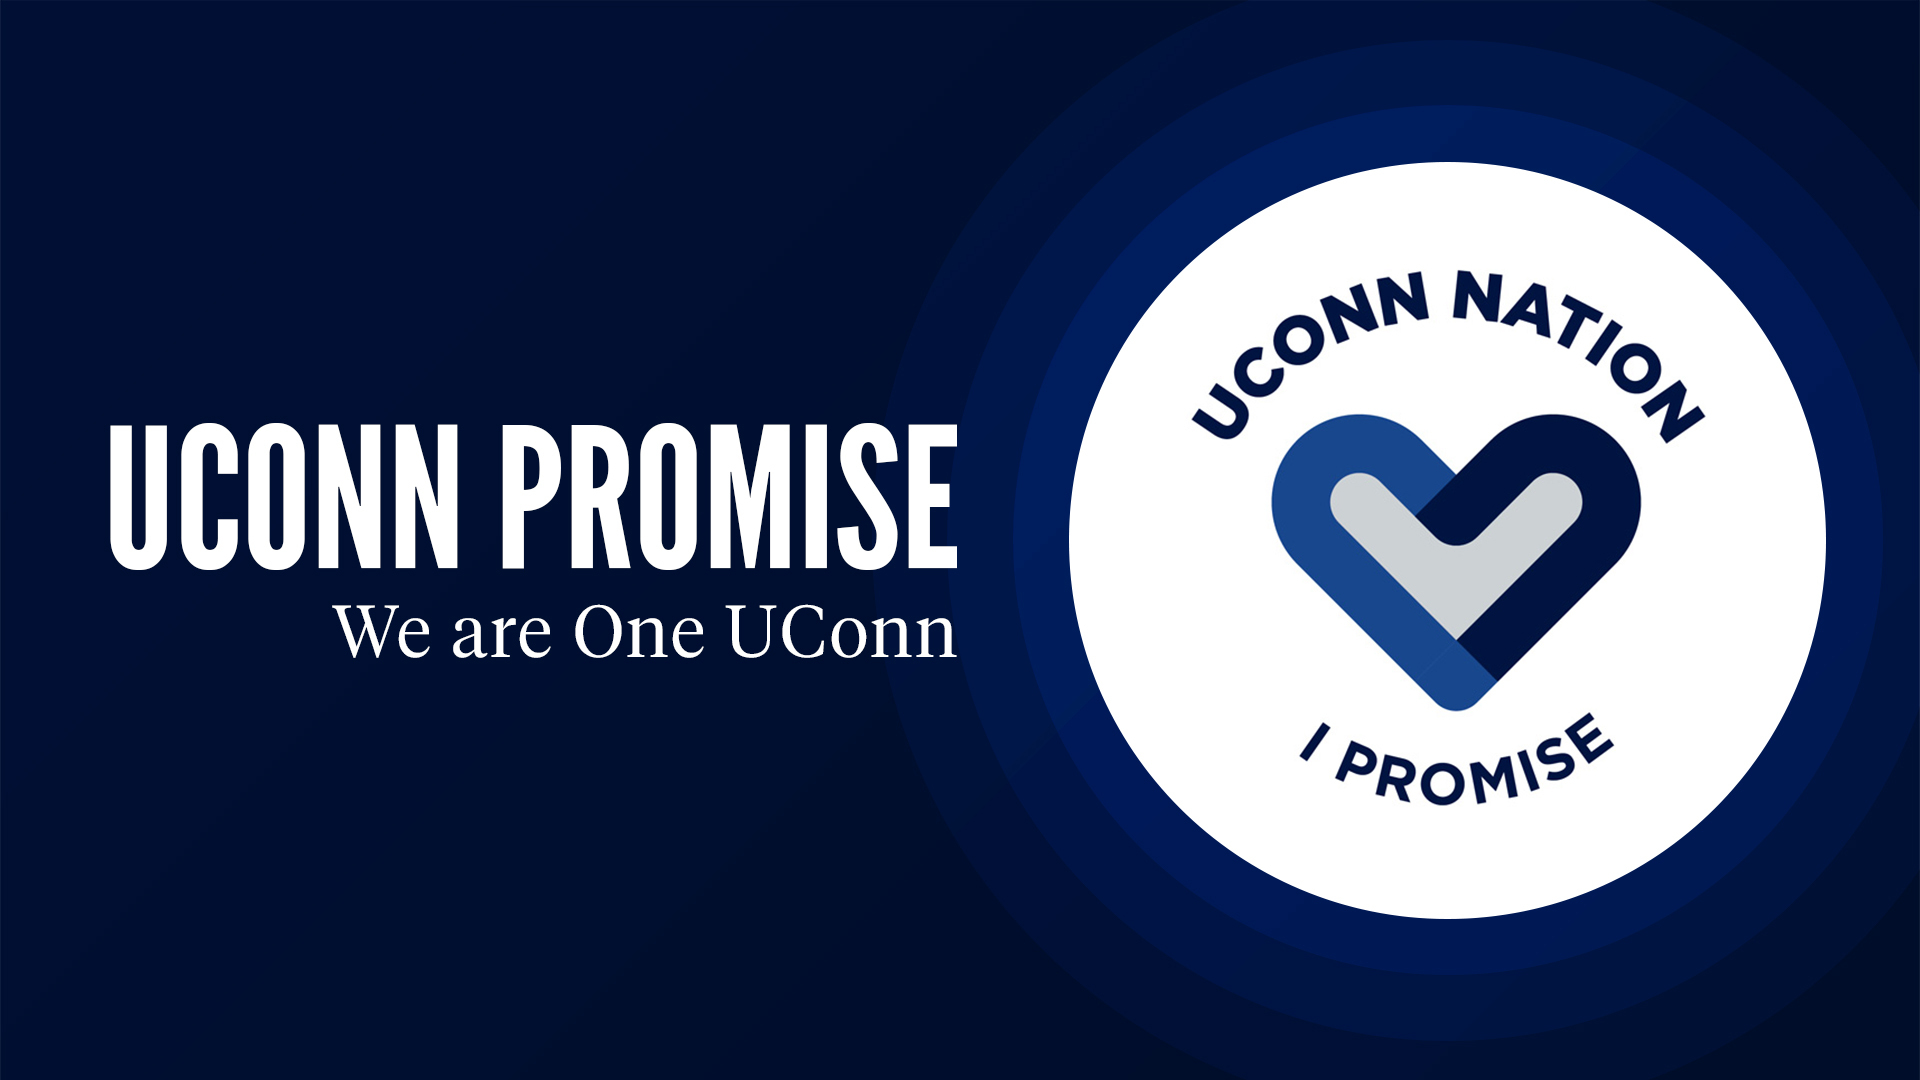 UConn Promise graphic